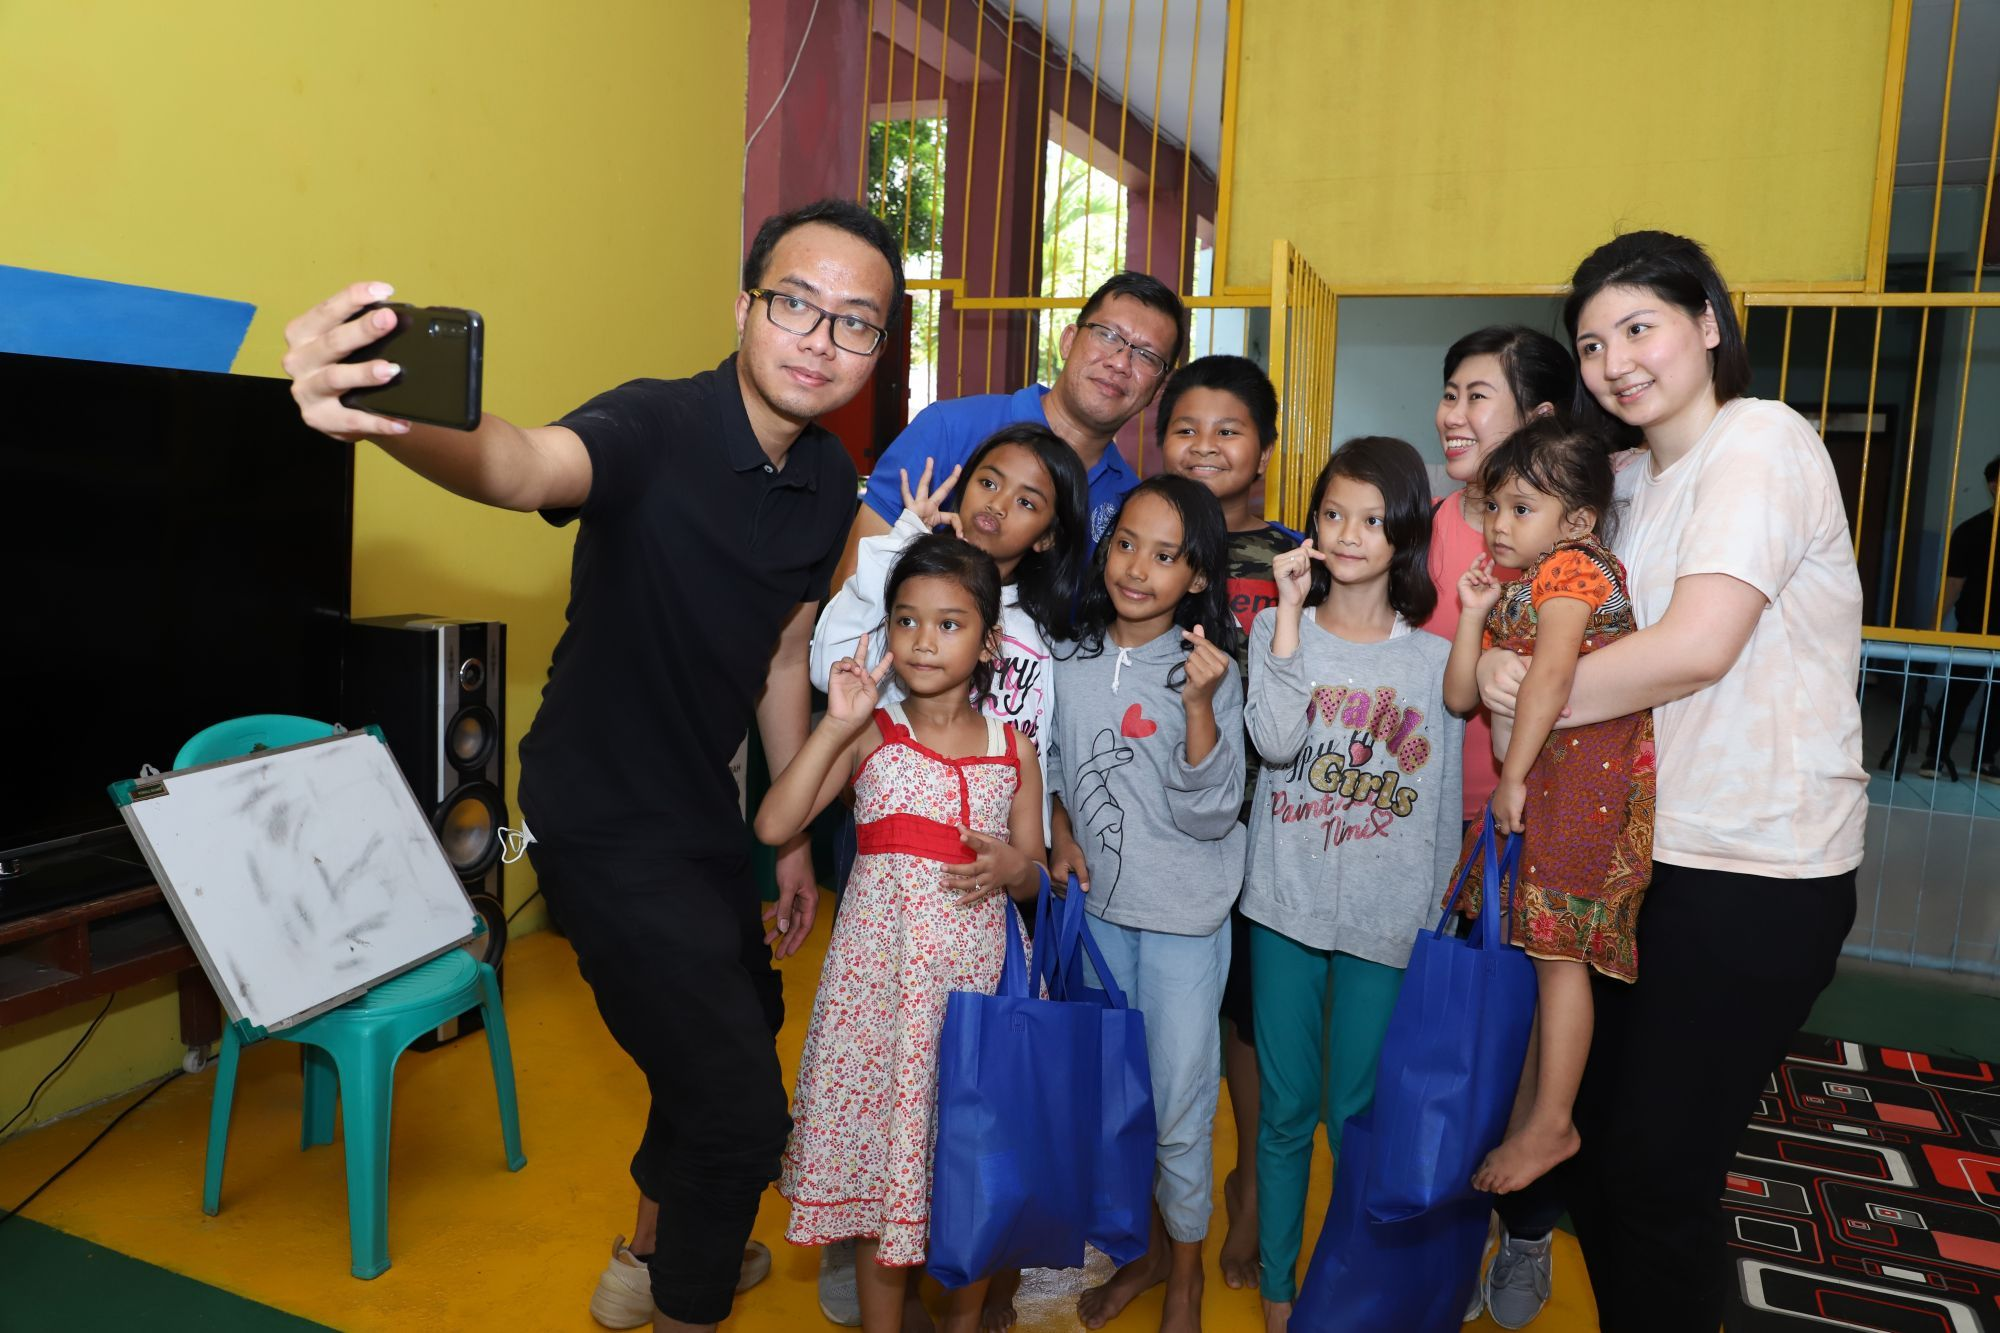 Connect To Change: Raising Environmental Awareness In Indonesia